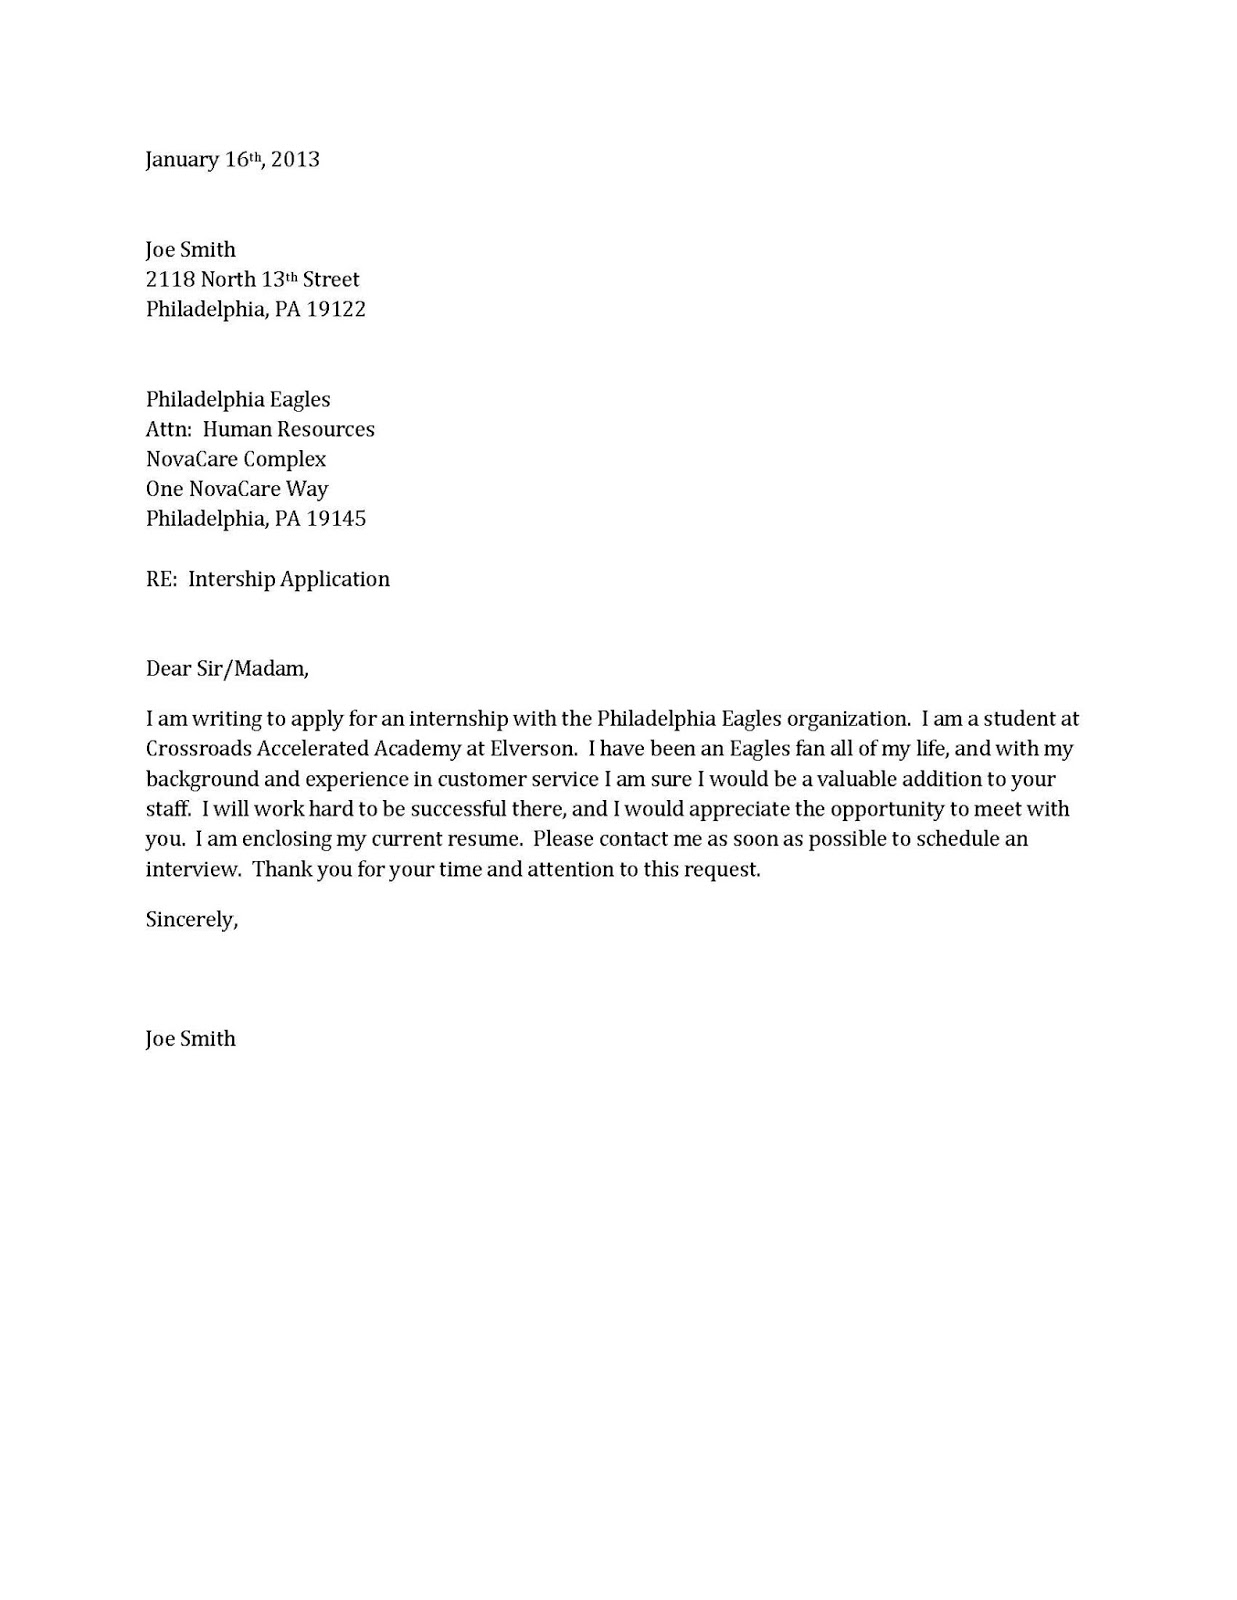 resume cover letter pdf - Sample Resume Cover Letters